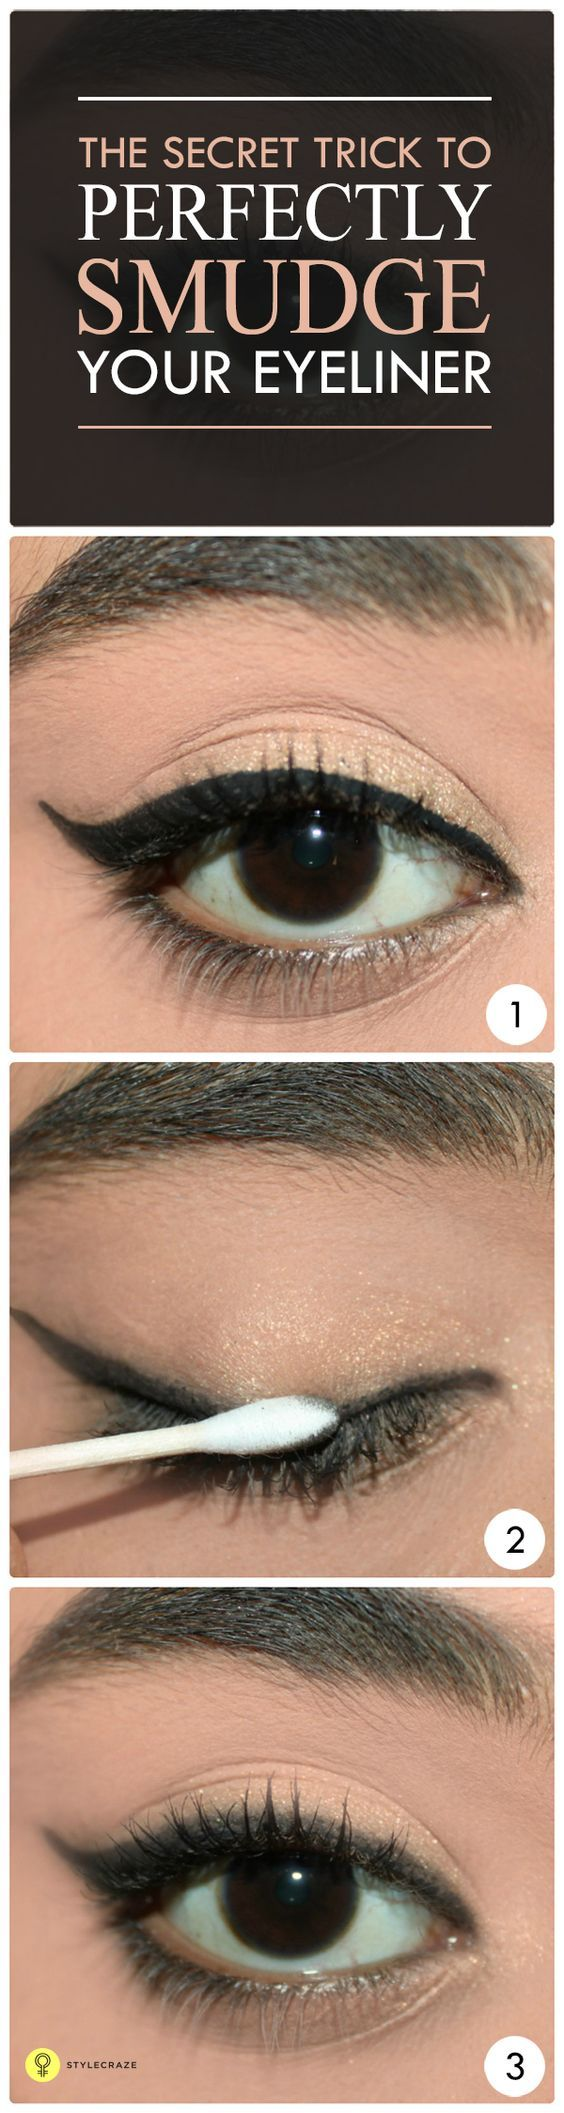 how to stop your eyeliner from smudging